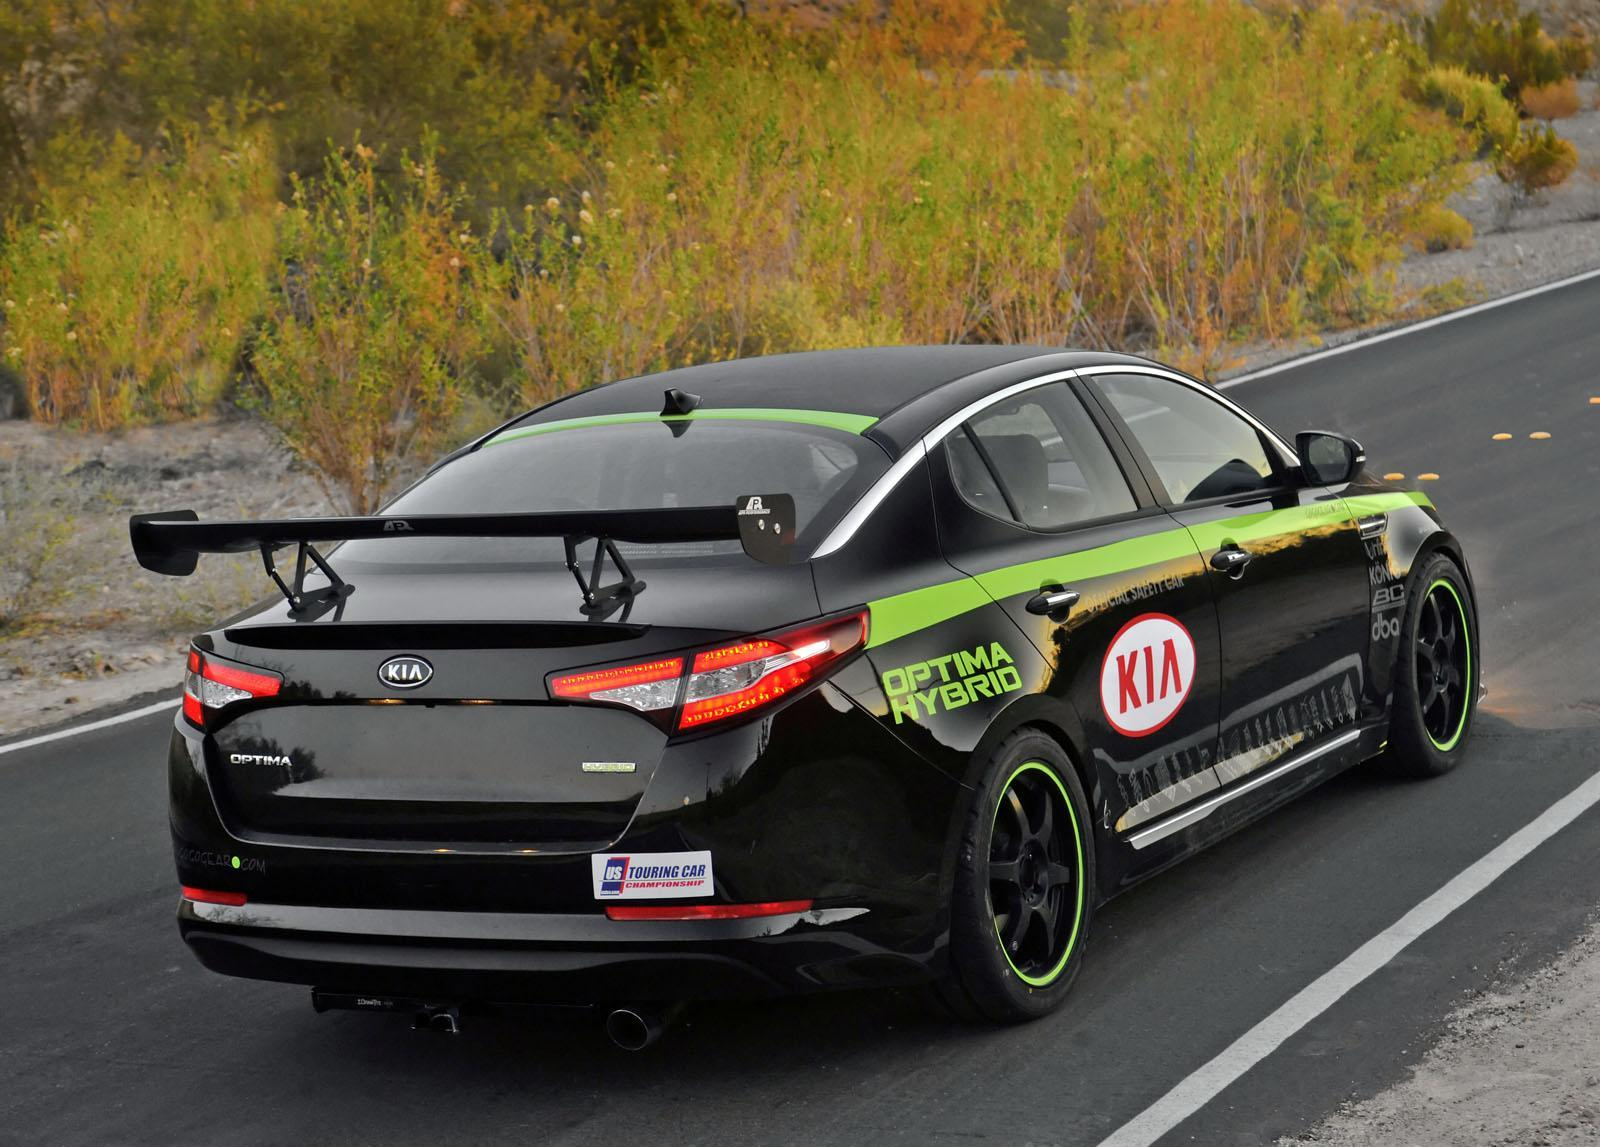 USTCC KIA Optima Hybrid Pace Car wallpapers - Auto Power Girl